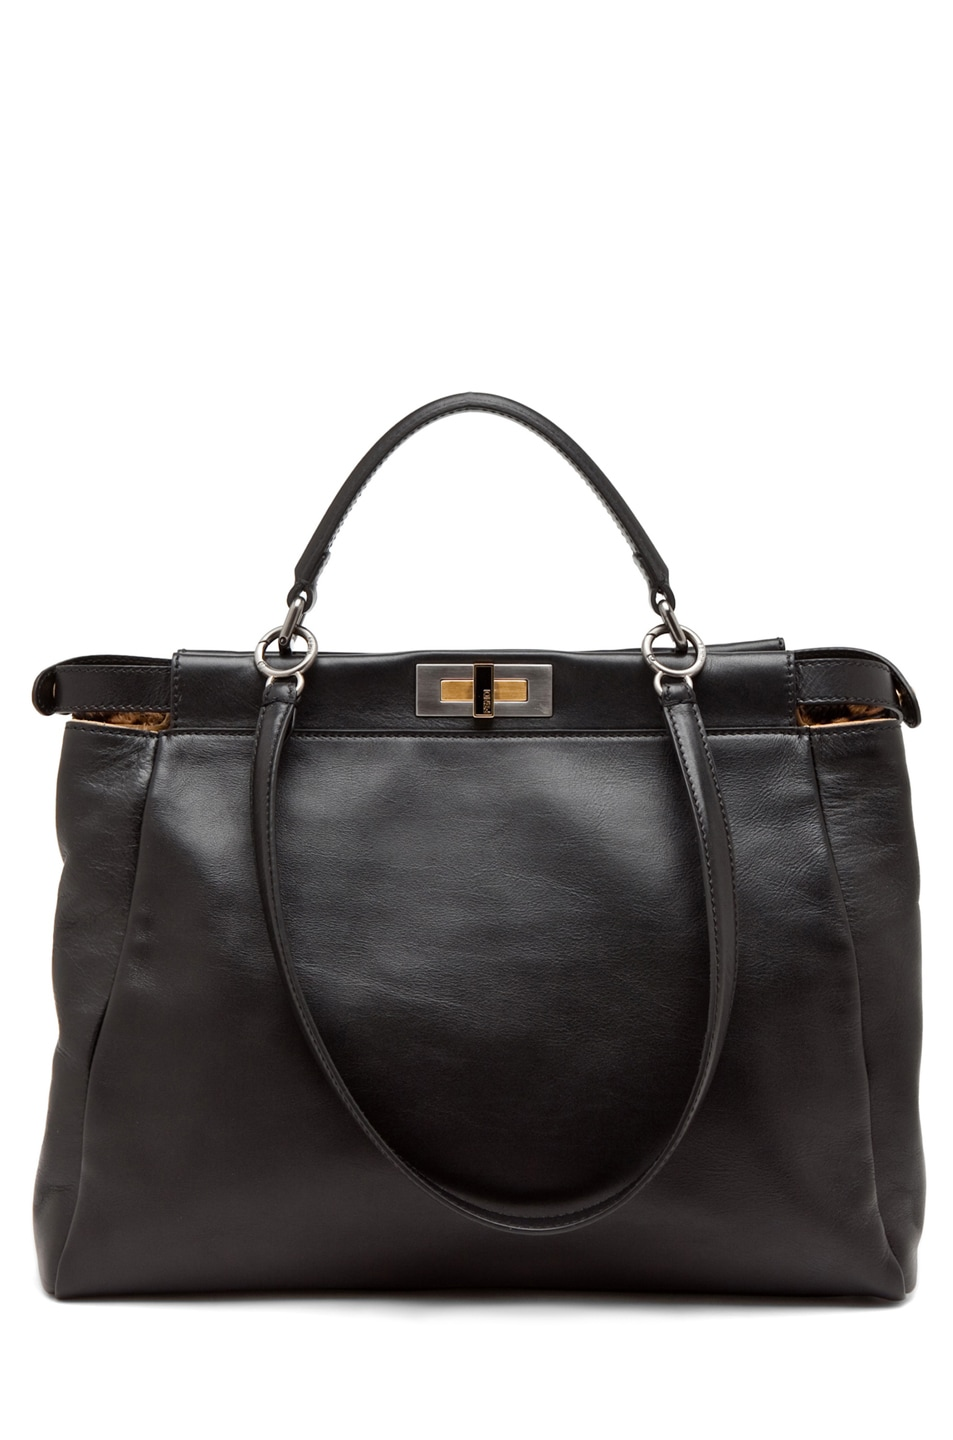 Image 1 of Fendi Peekaboo Handbag in Black/Leopard